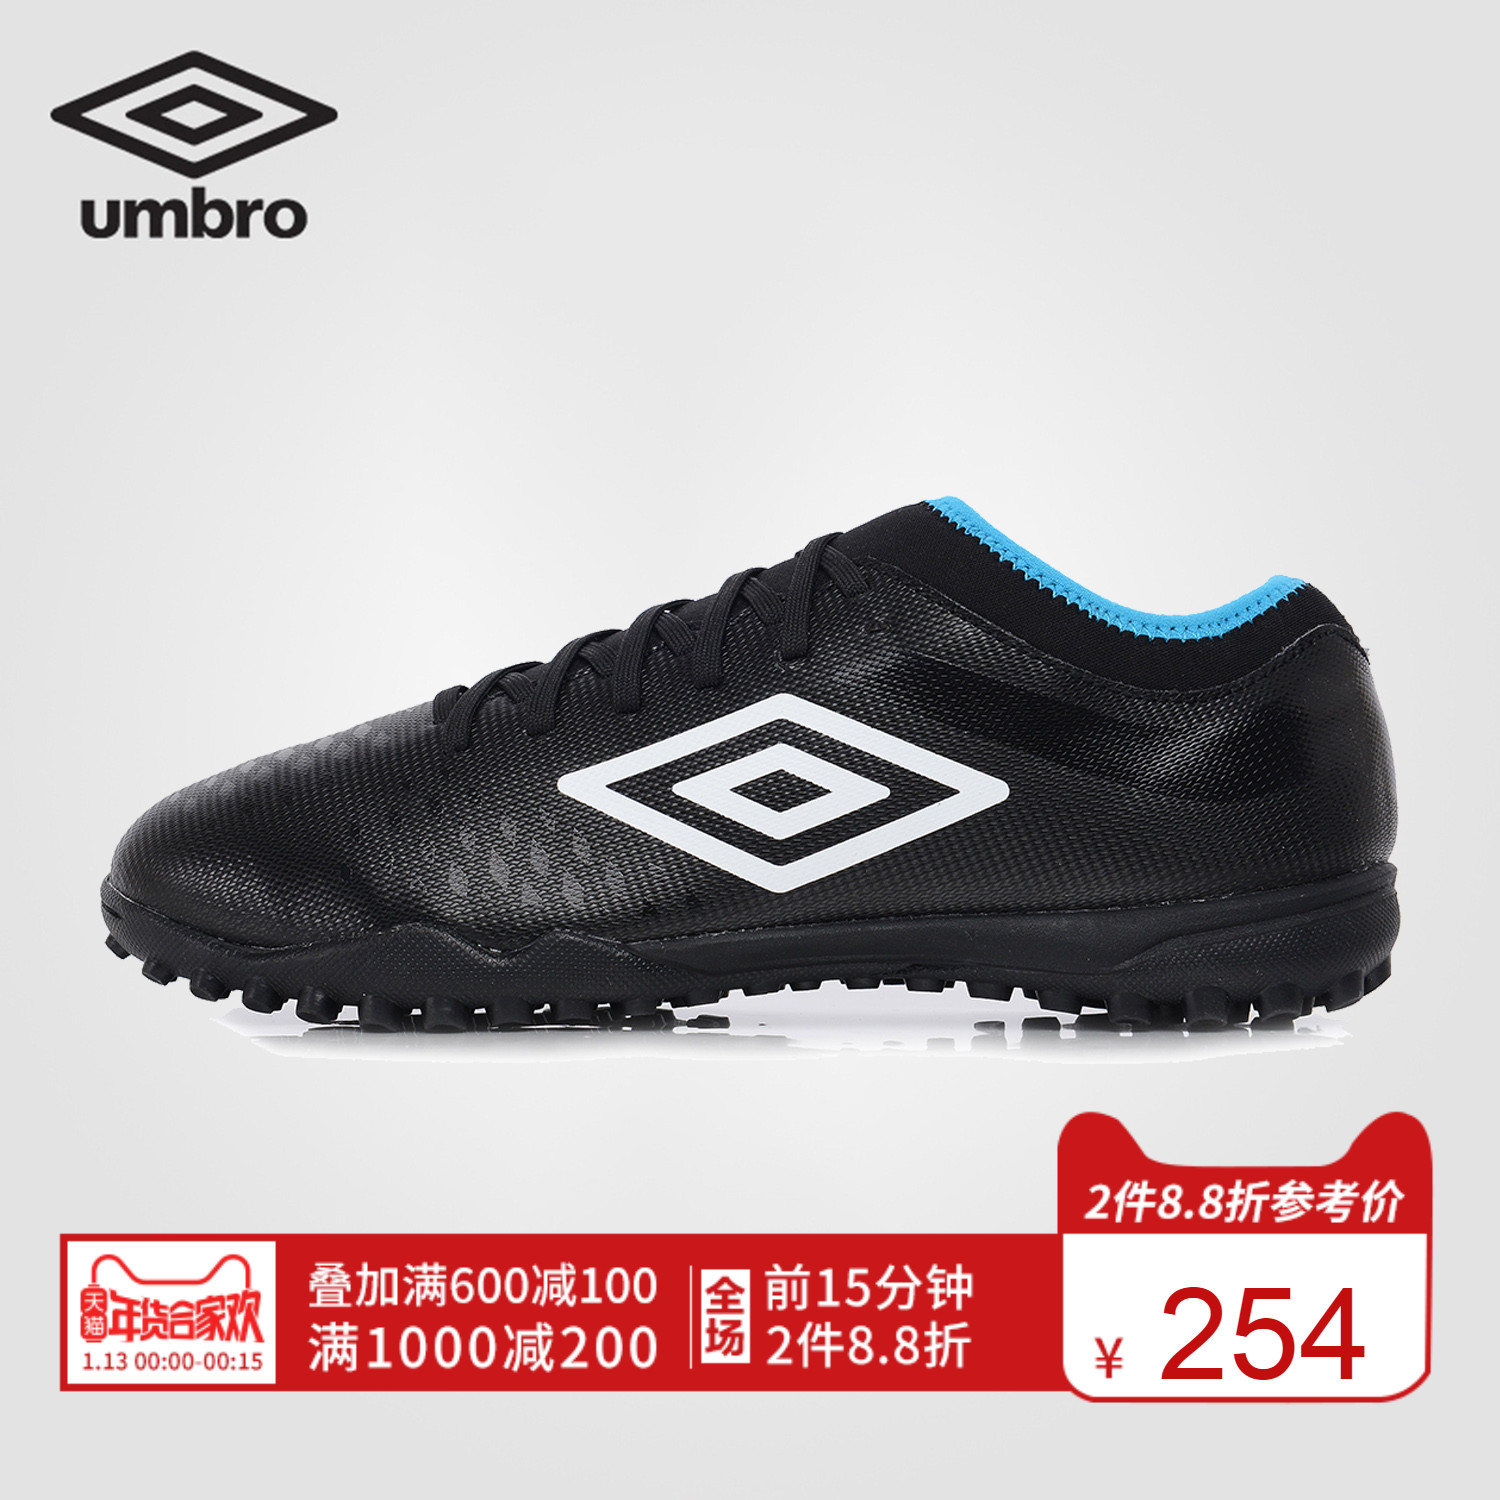 UMBRO Velocita 4 Club TF 茵宝2018男子碎钉足球鞋UI183FT0103